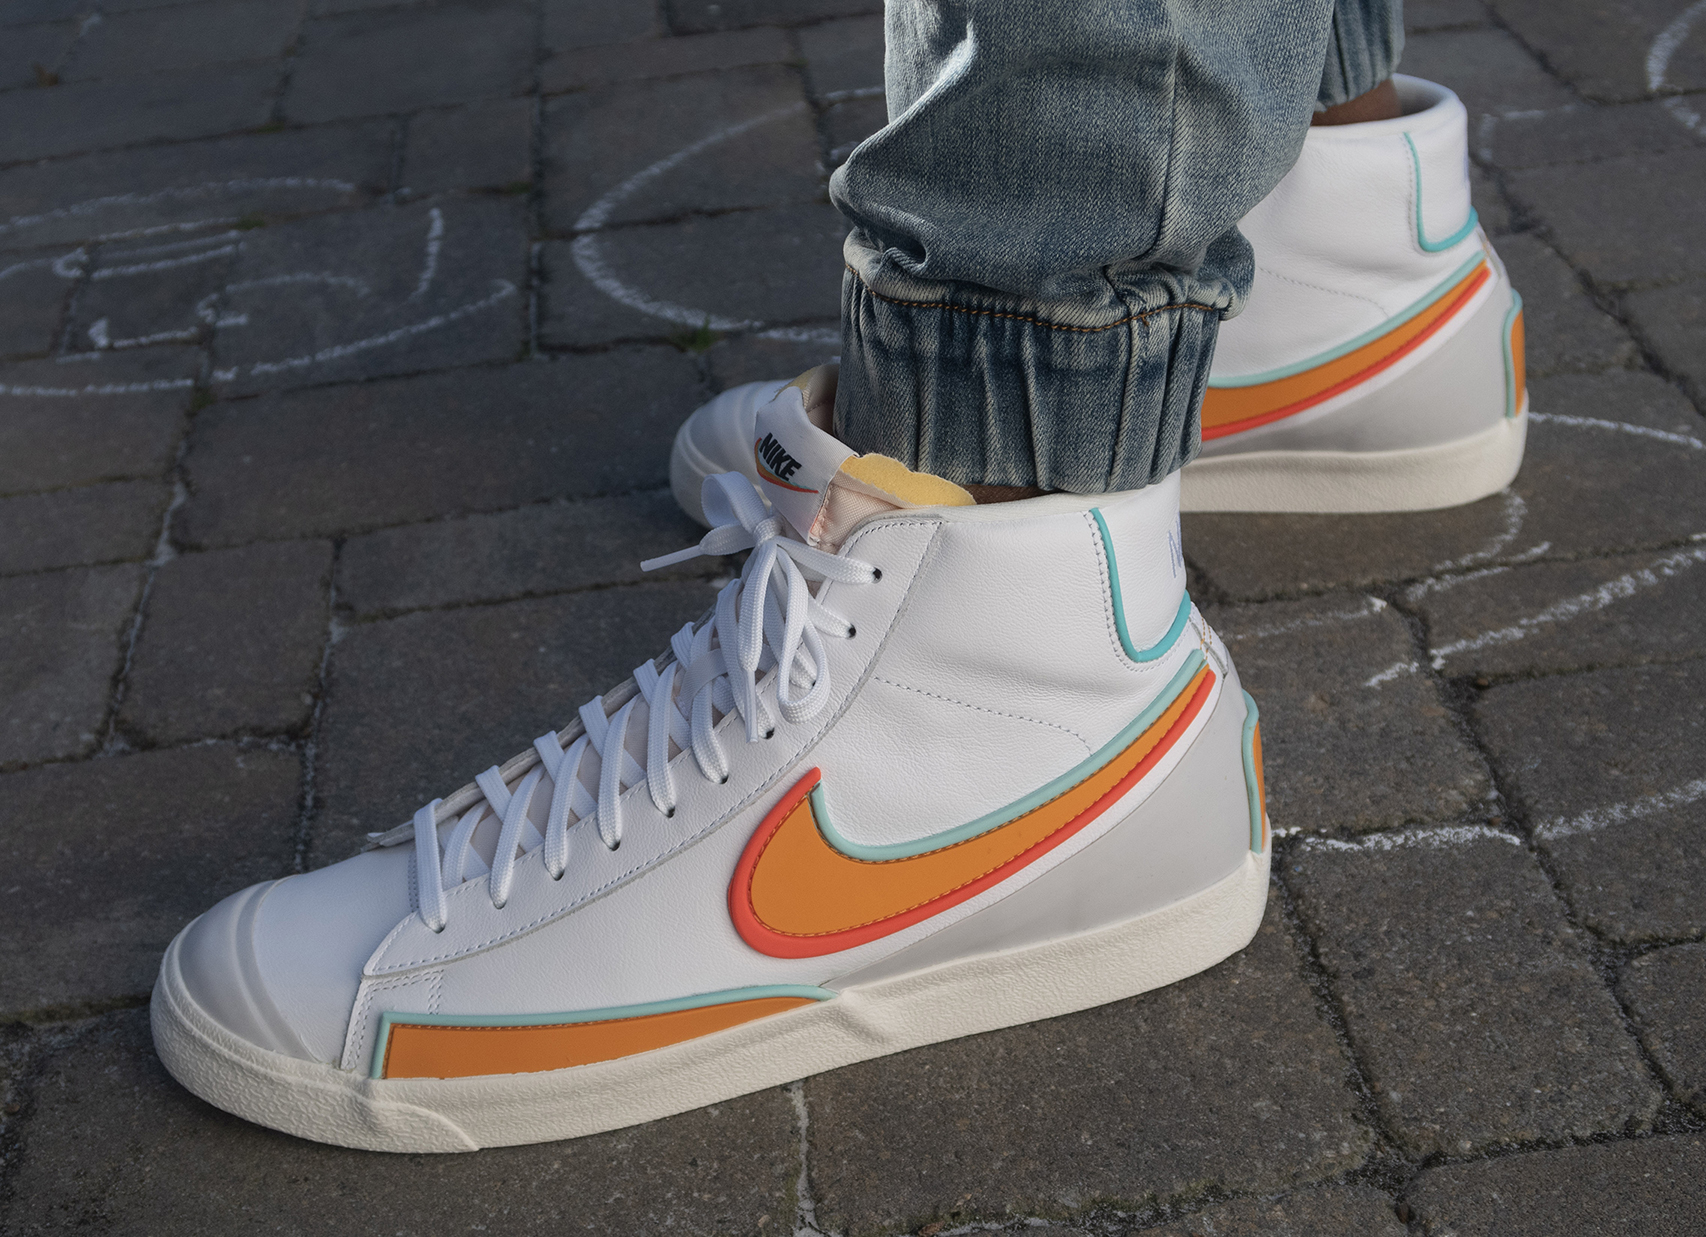 MDRN Fit: Outfit Style for the Nike Blazer Mid '77 Infinite ...